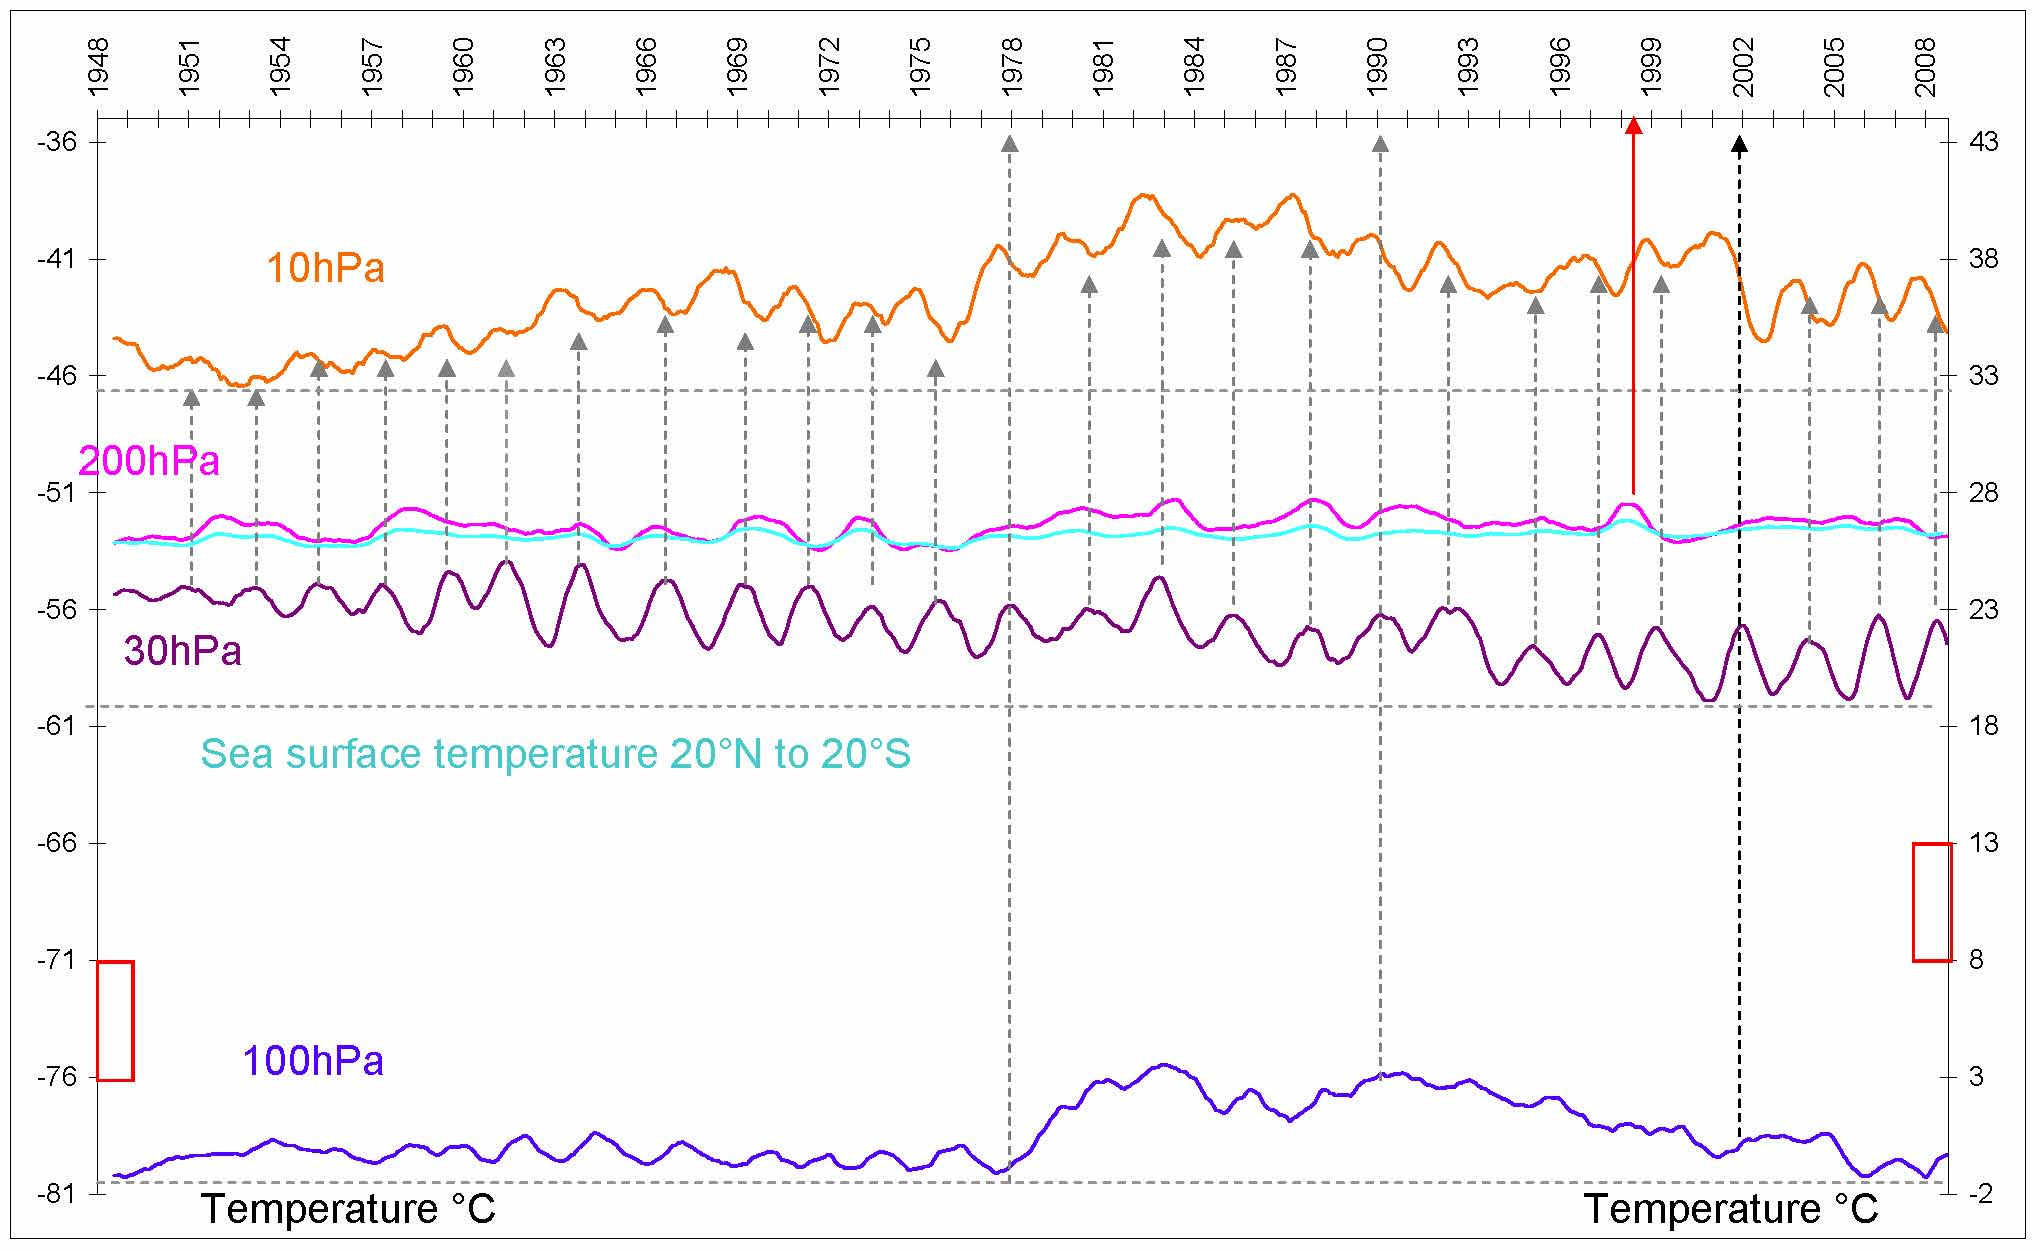 fig-1-from-10hpa-to-sea-level